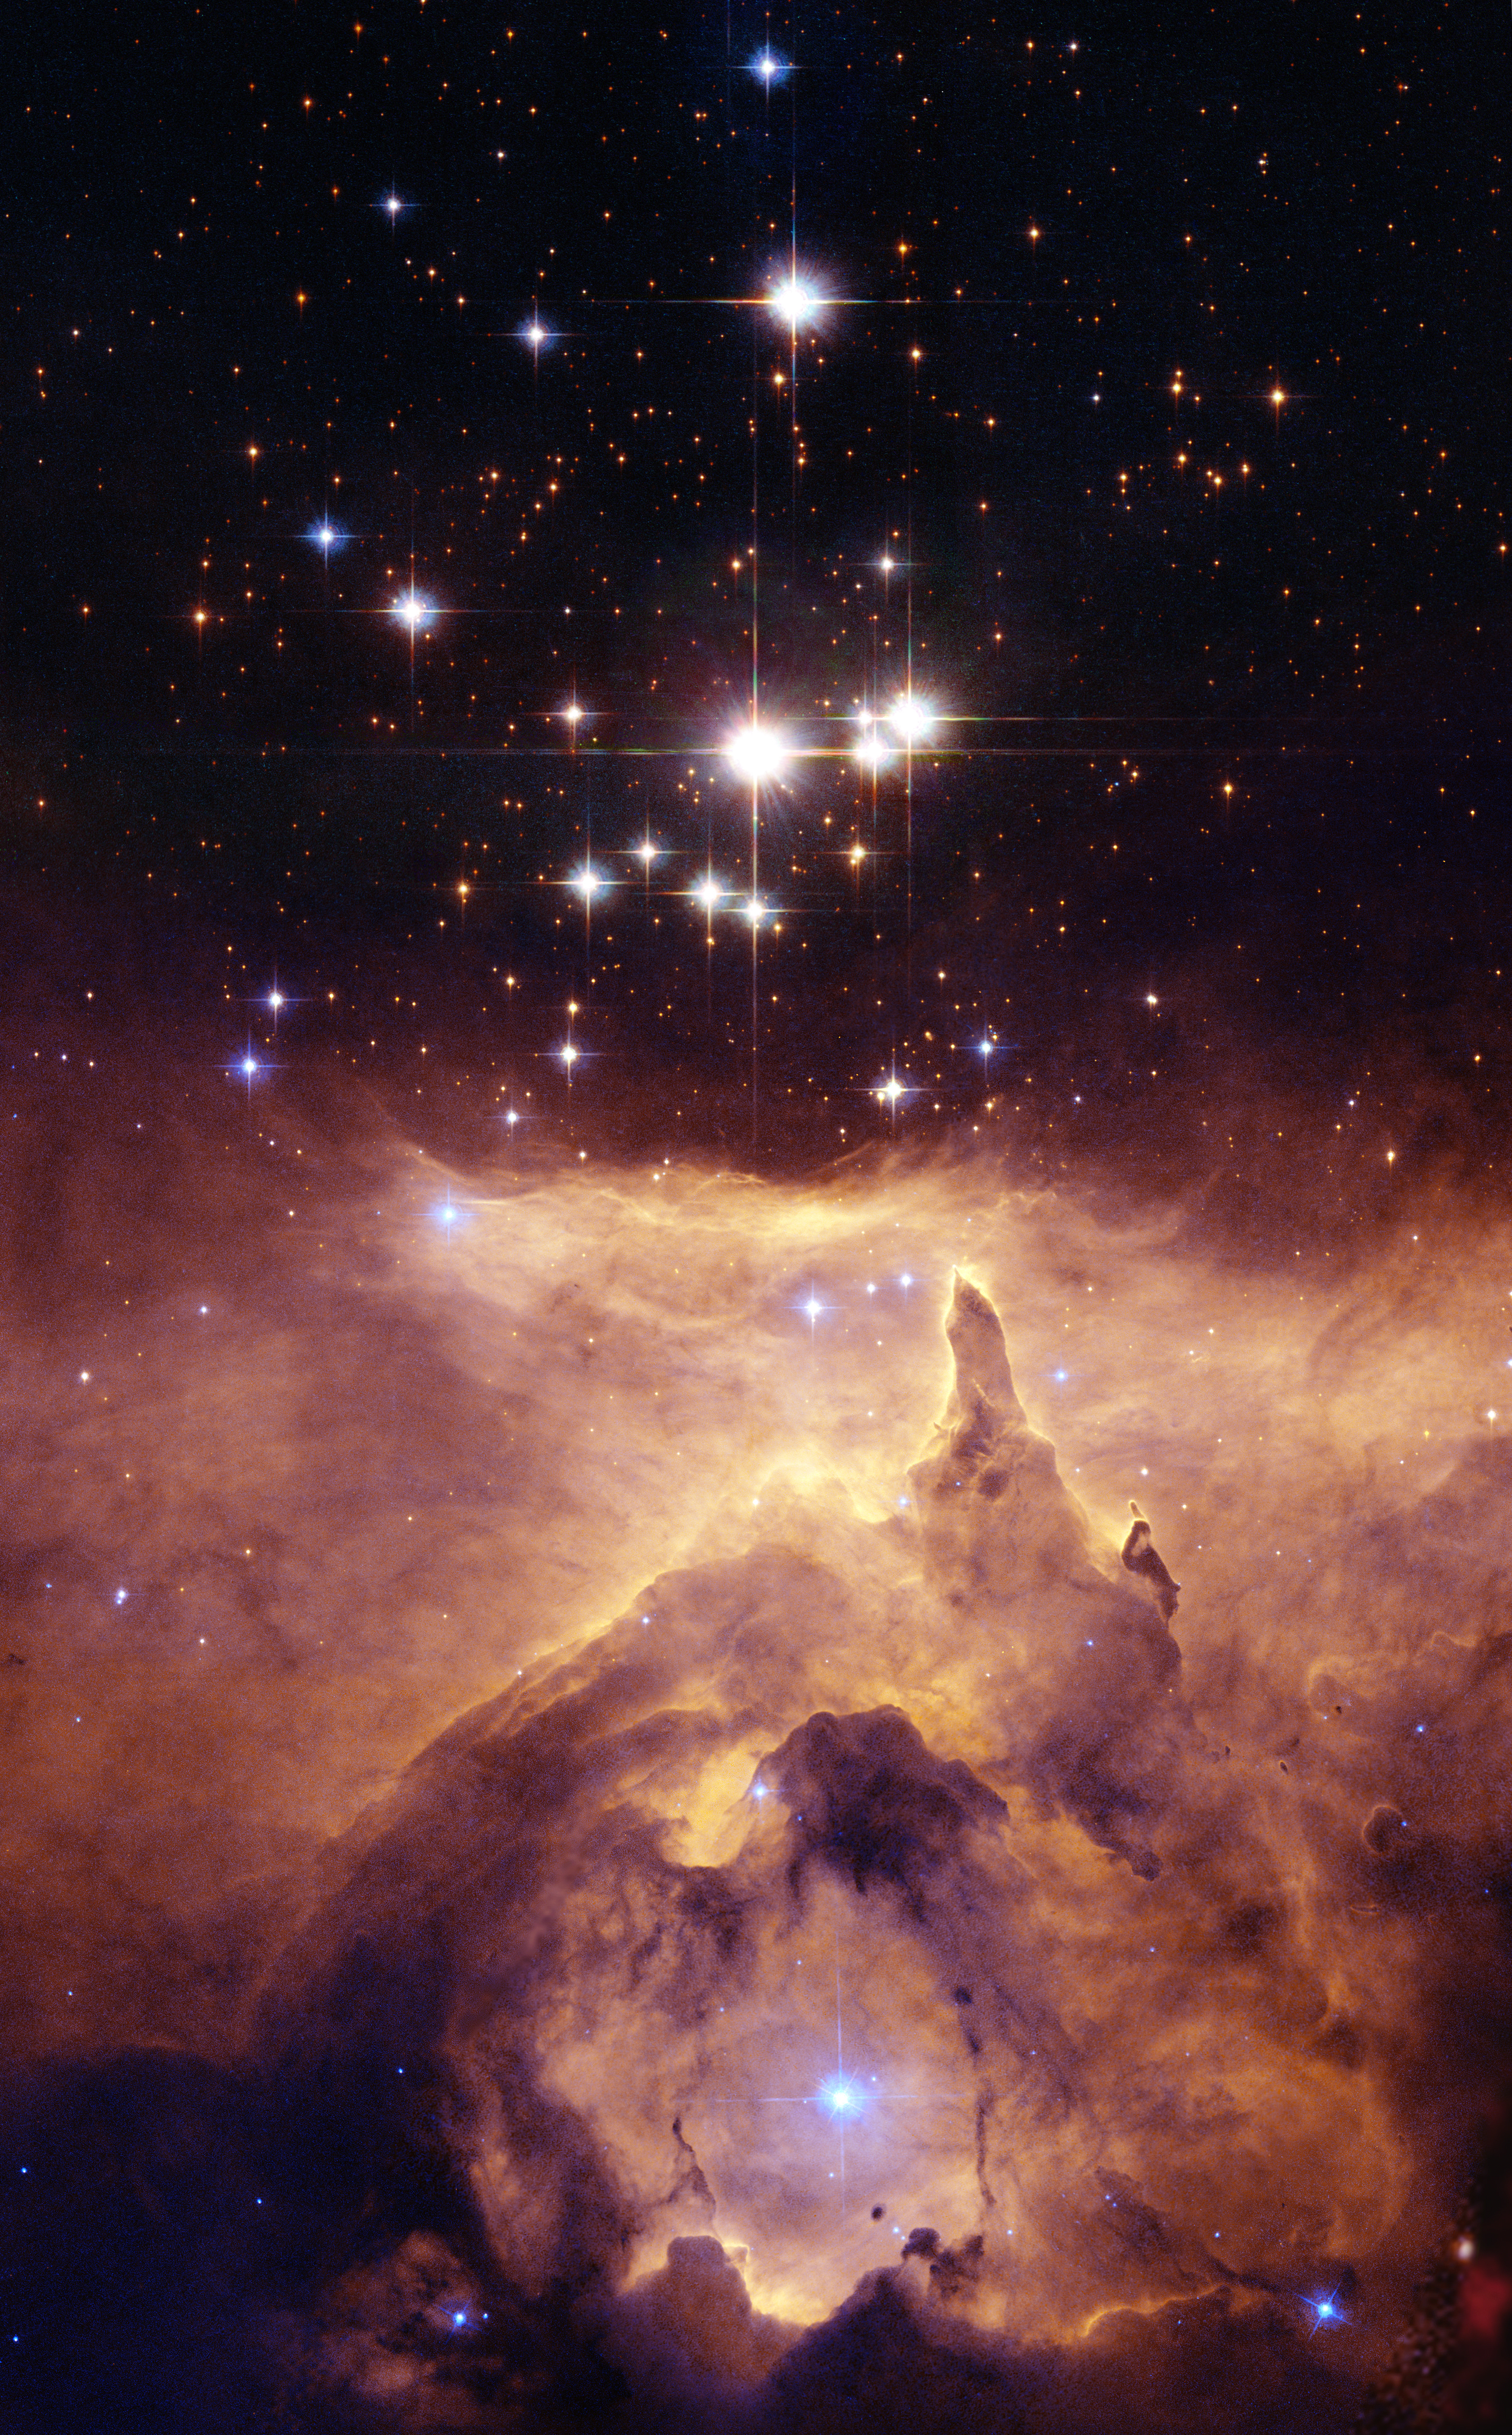 A Massive Star in NGC 6357